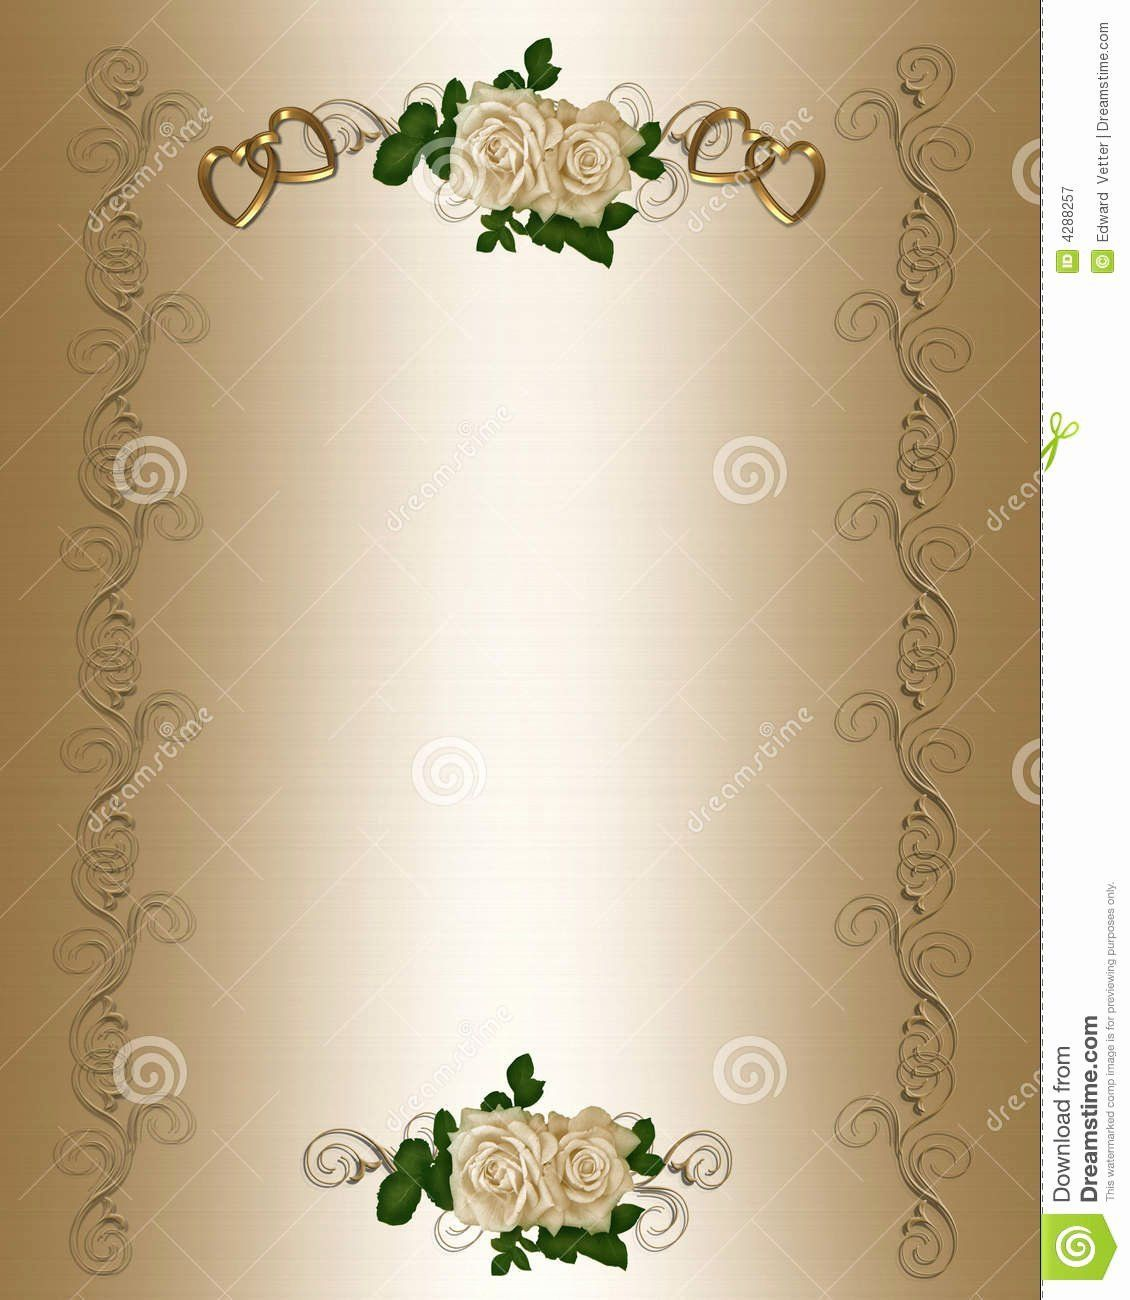 006 Excellent Free Download Invitation Card Template Inspiration  Templates Indian Wedding Design Software PngFull